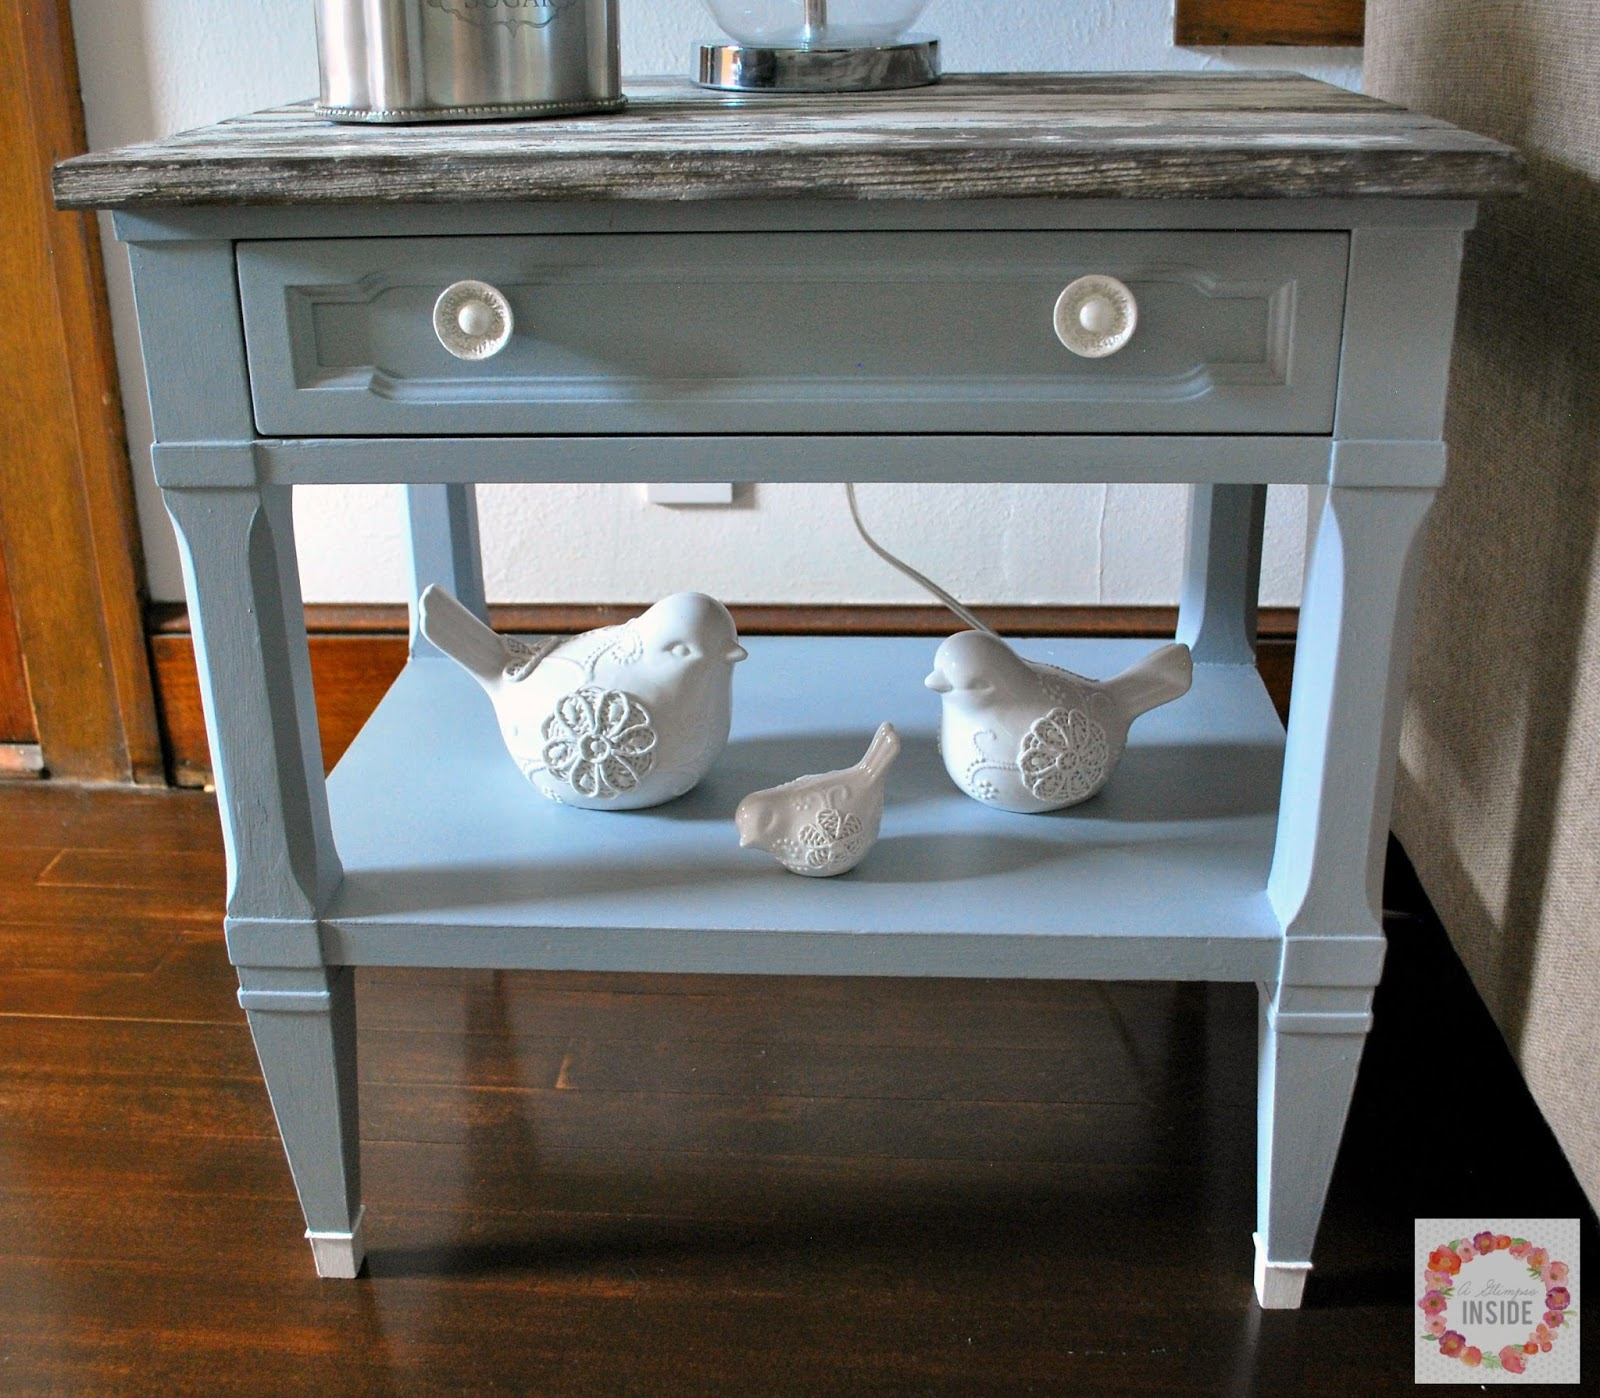 http://www.aglimpseinsideblog.com/2015/09/quick-end-table-makeover.html